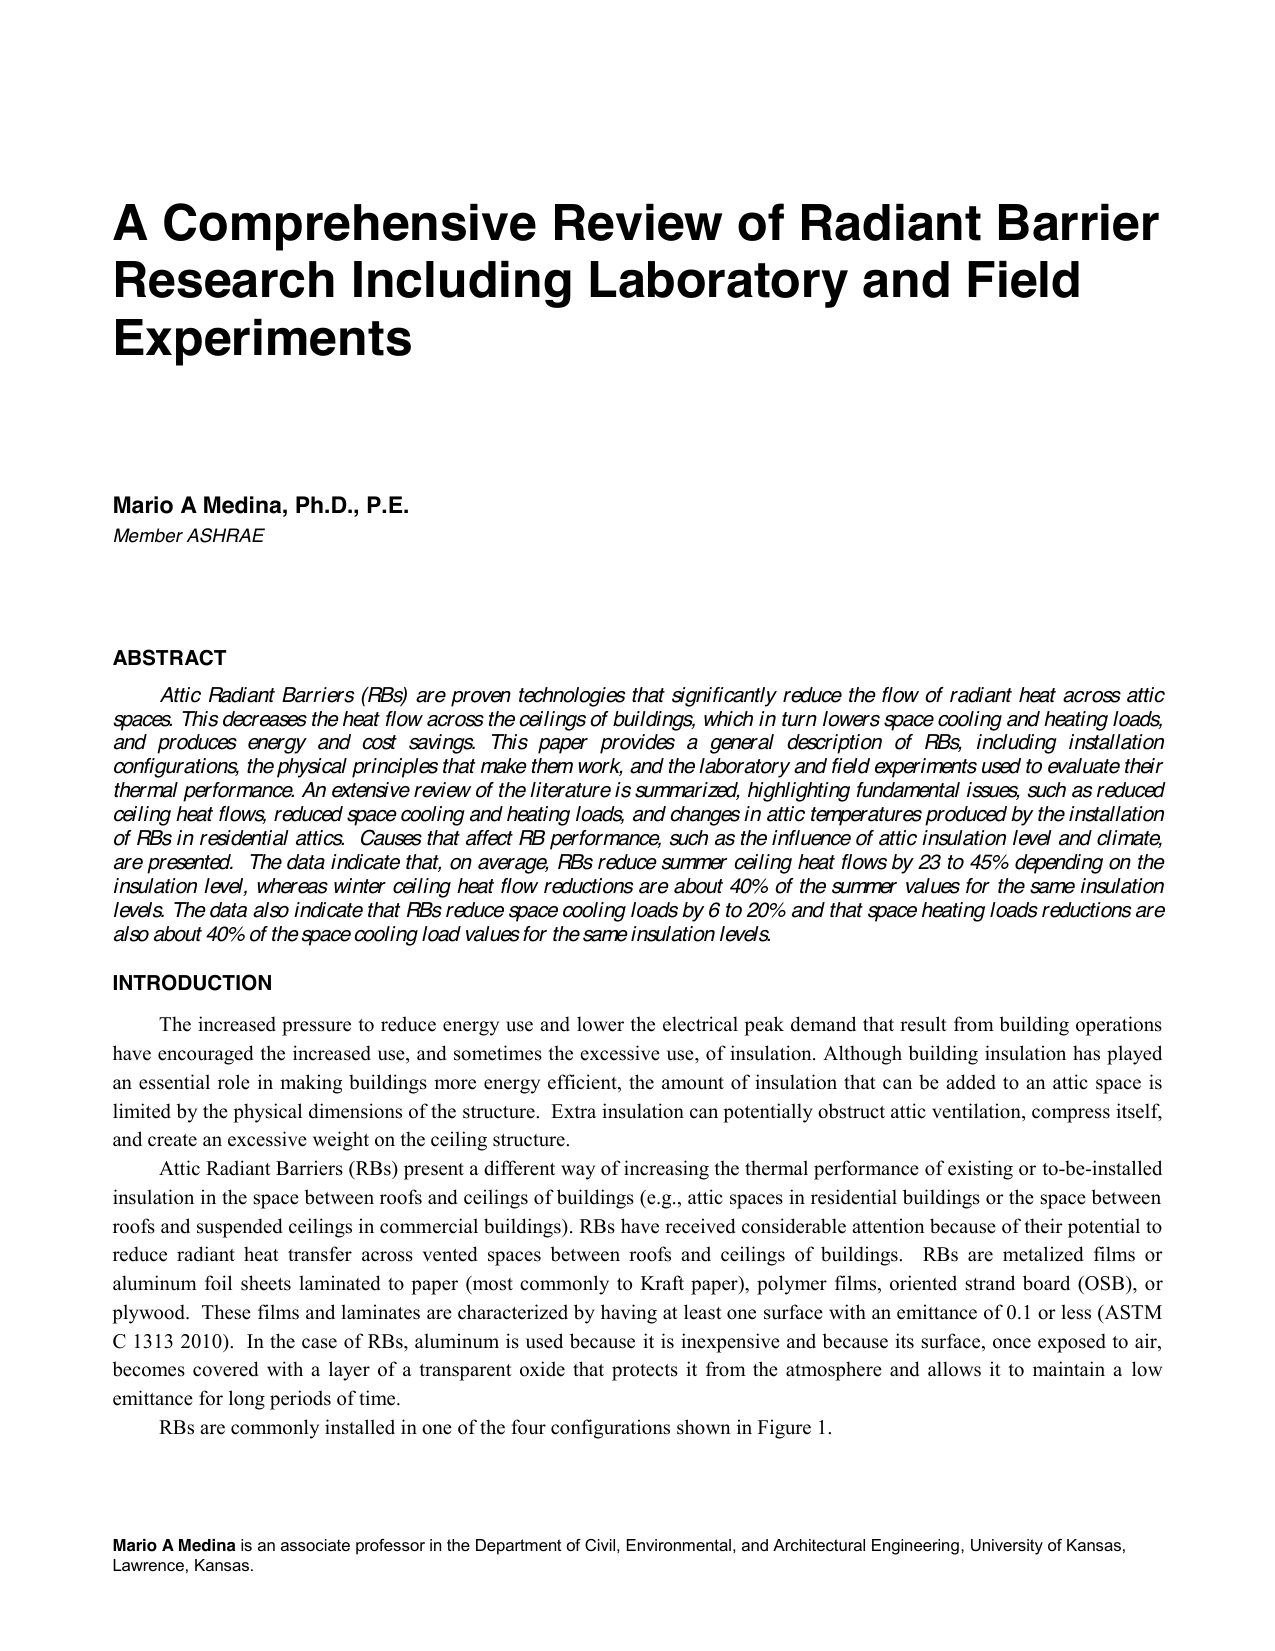 A Comprehensive Review of Radiant Barrier